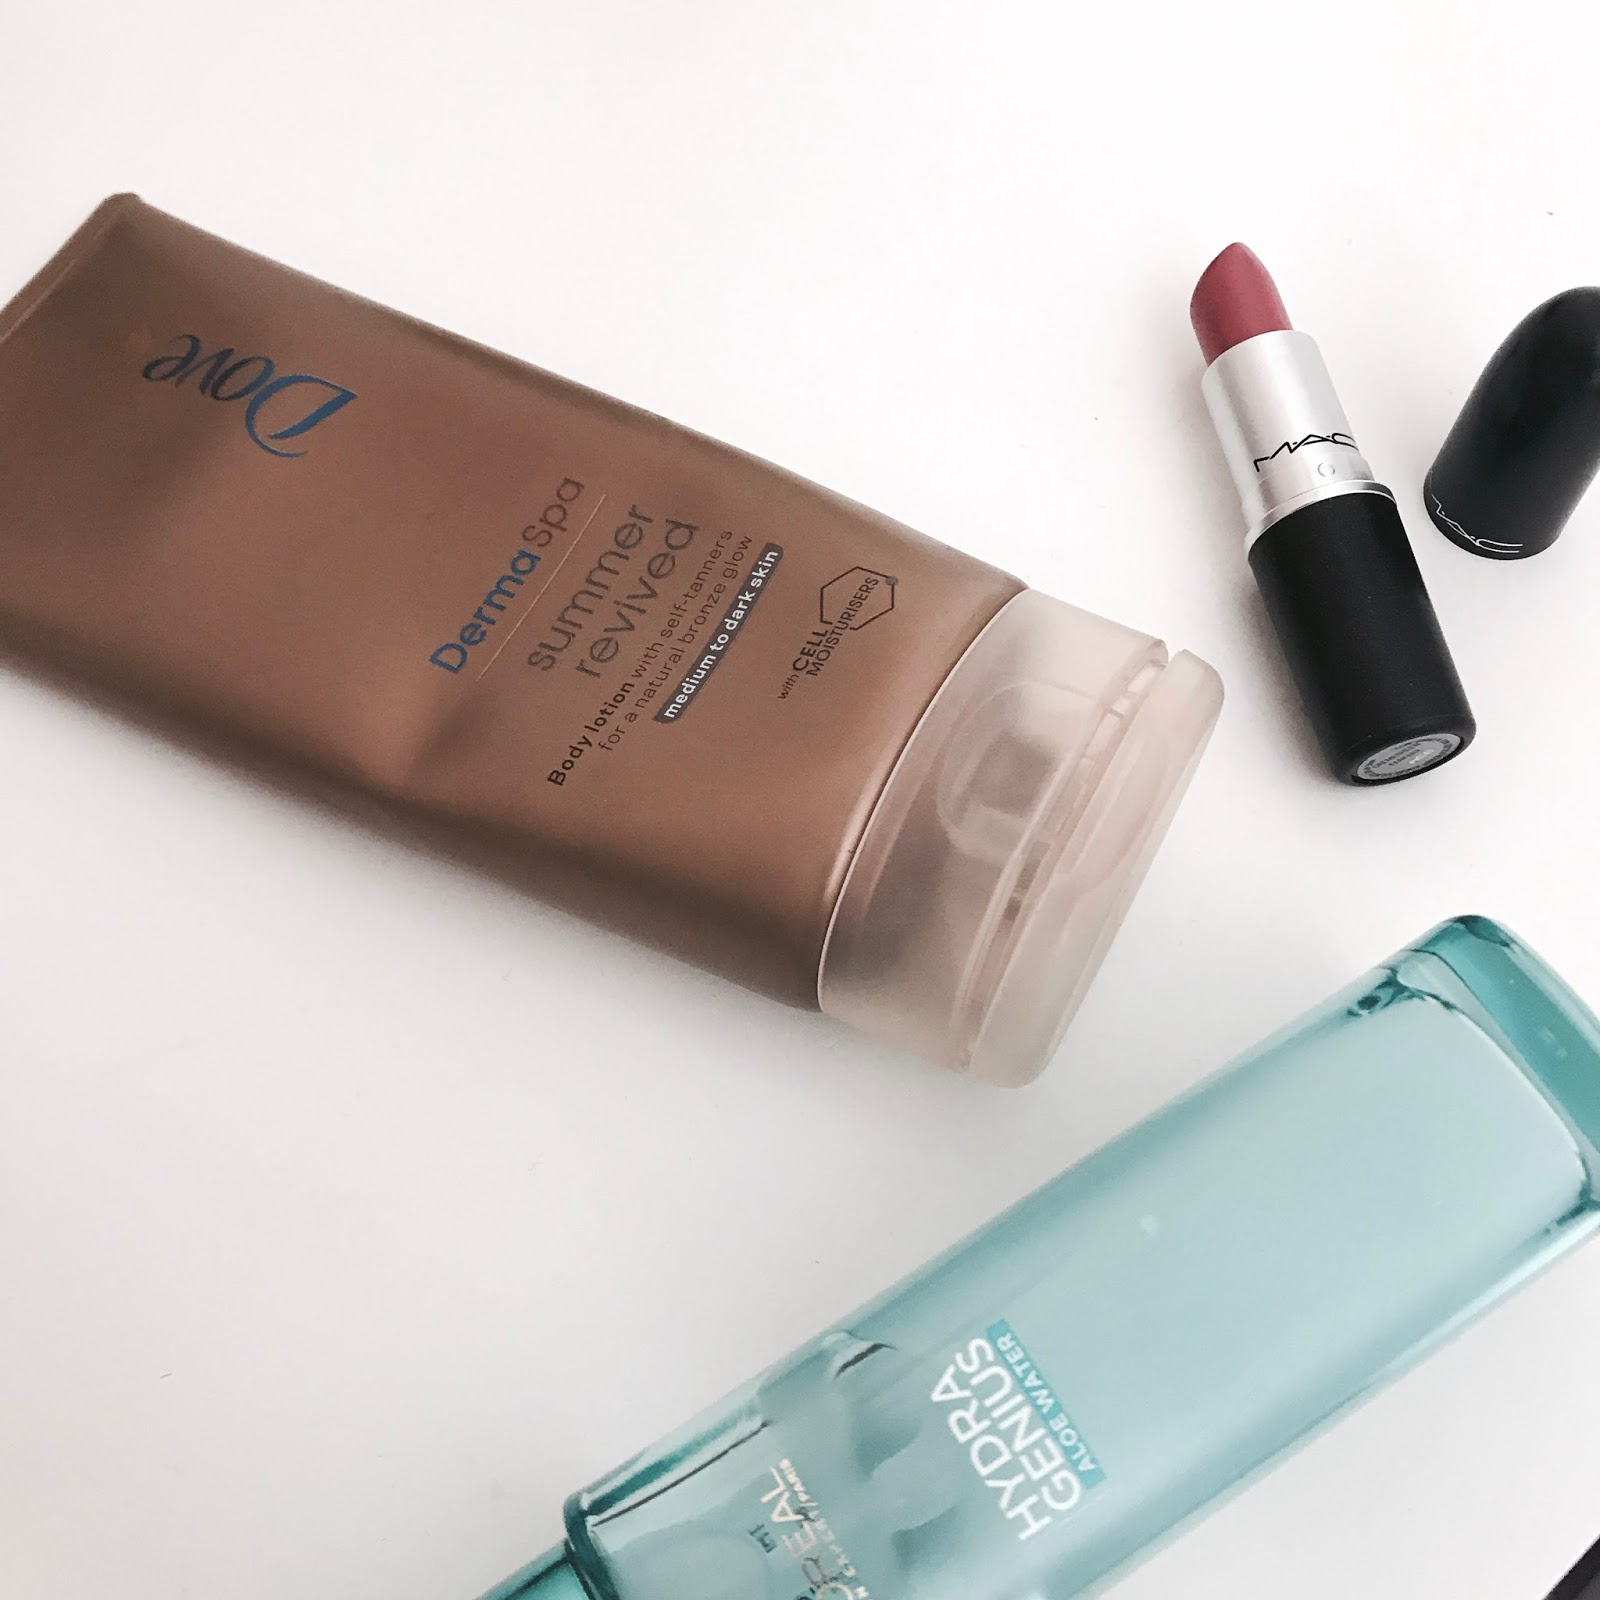 July favourites - Mac Fanfare, Loreal, Dove